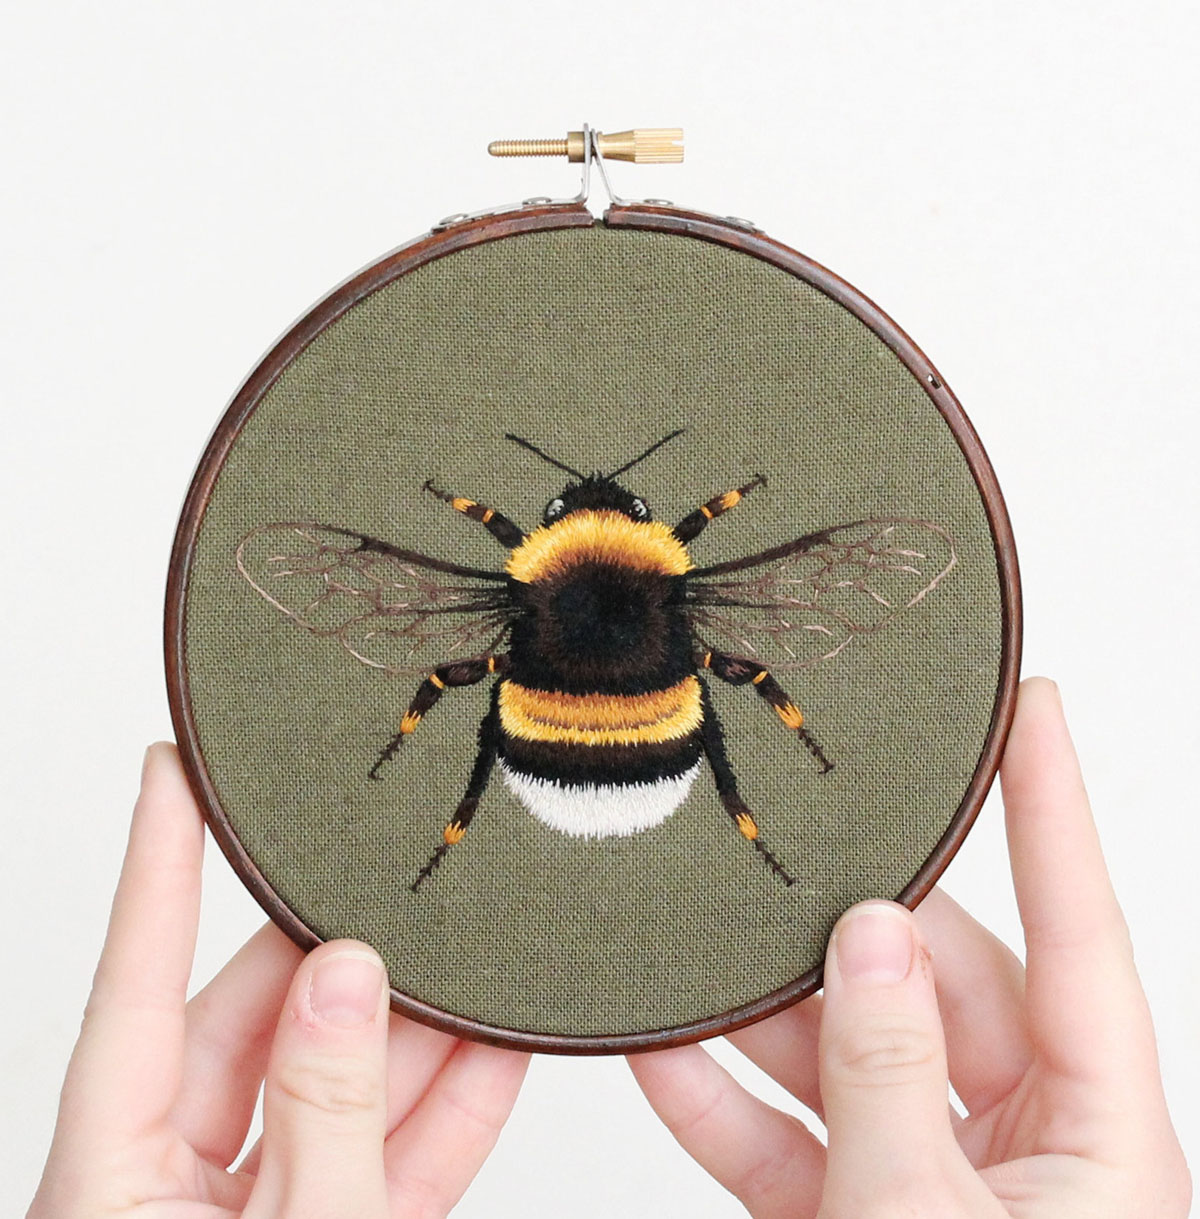 embroidery art fly